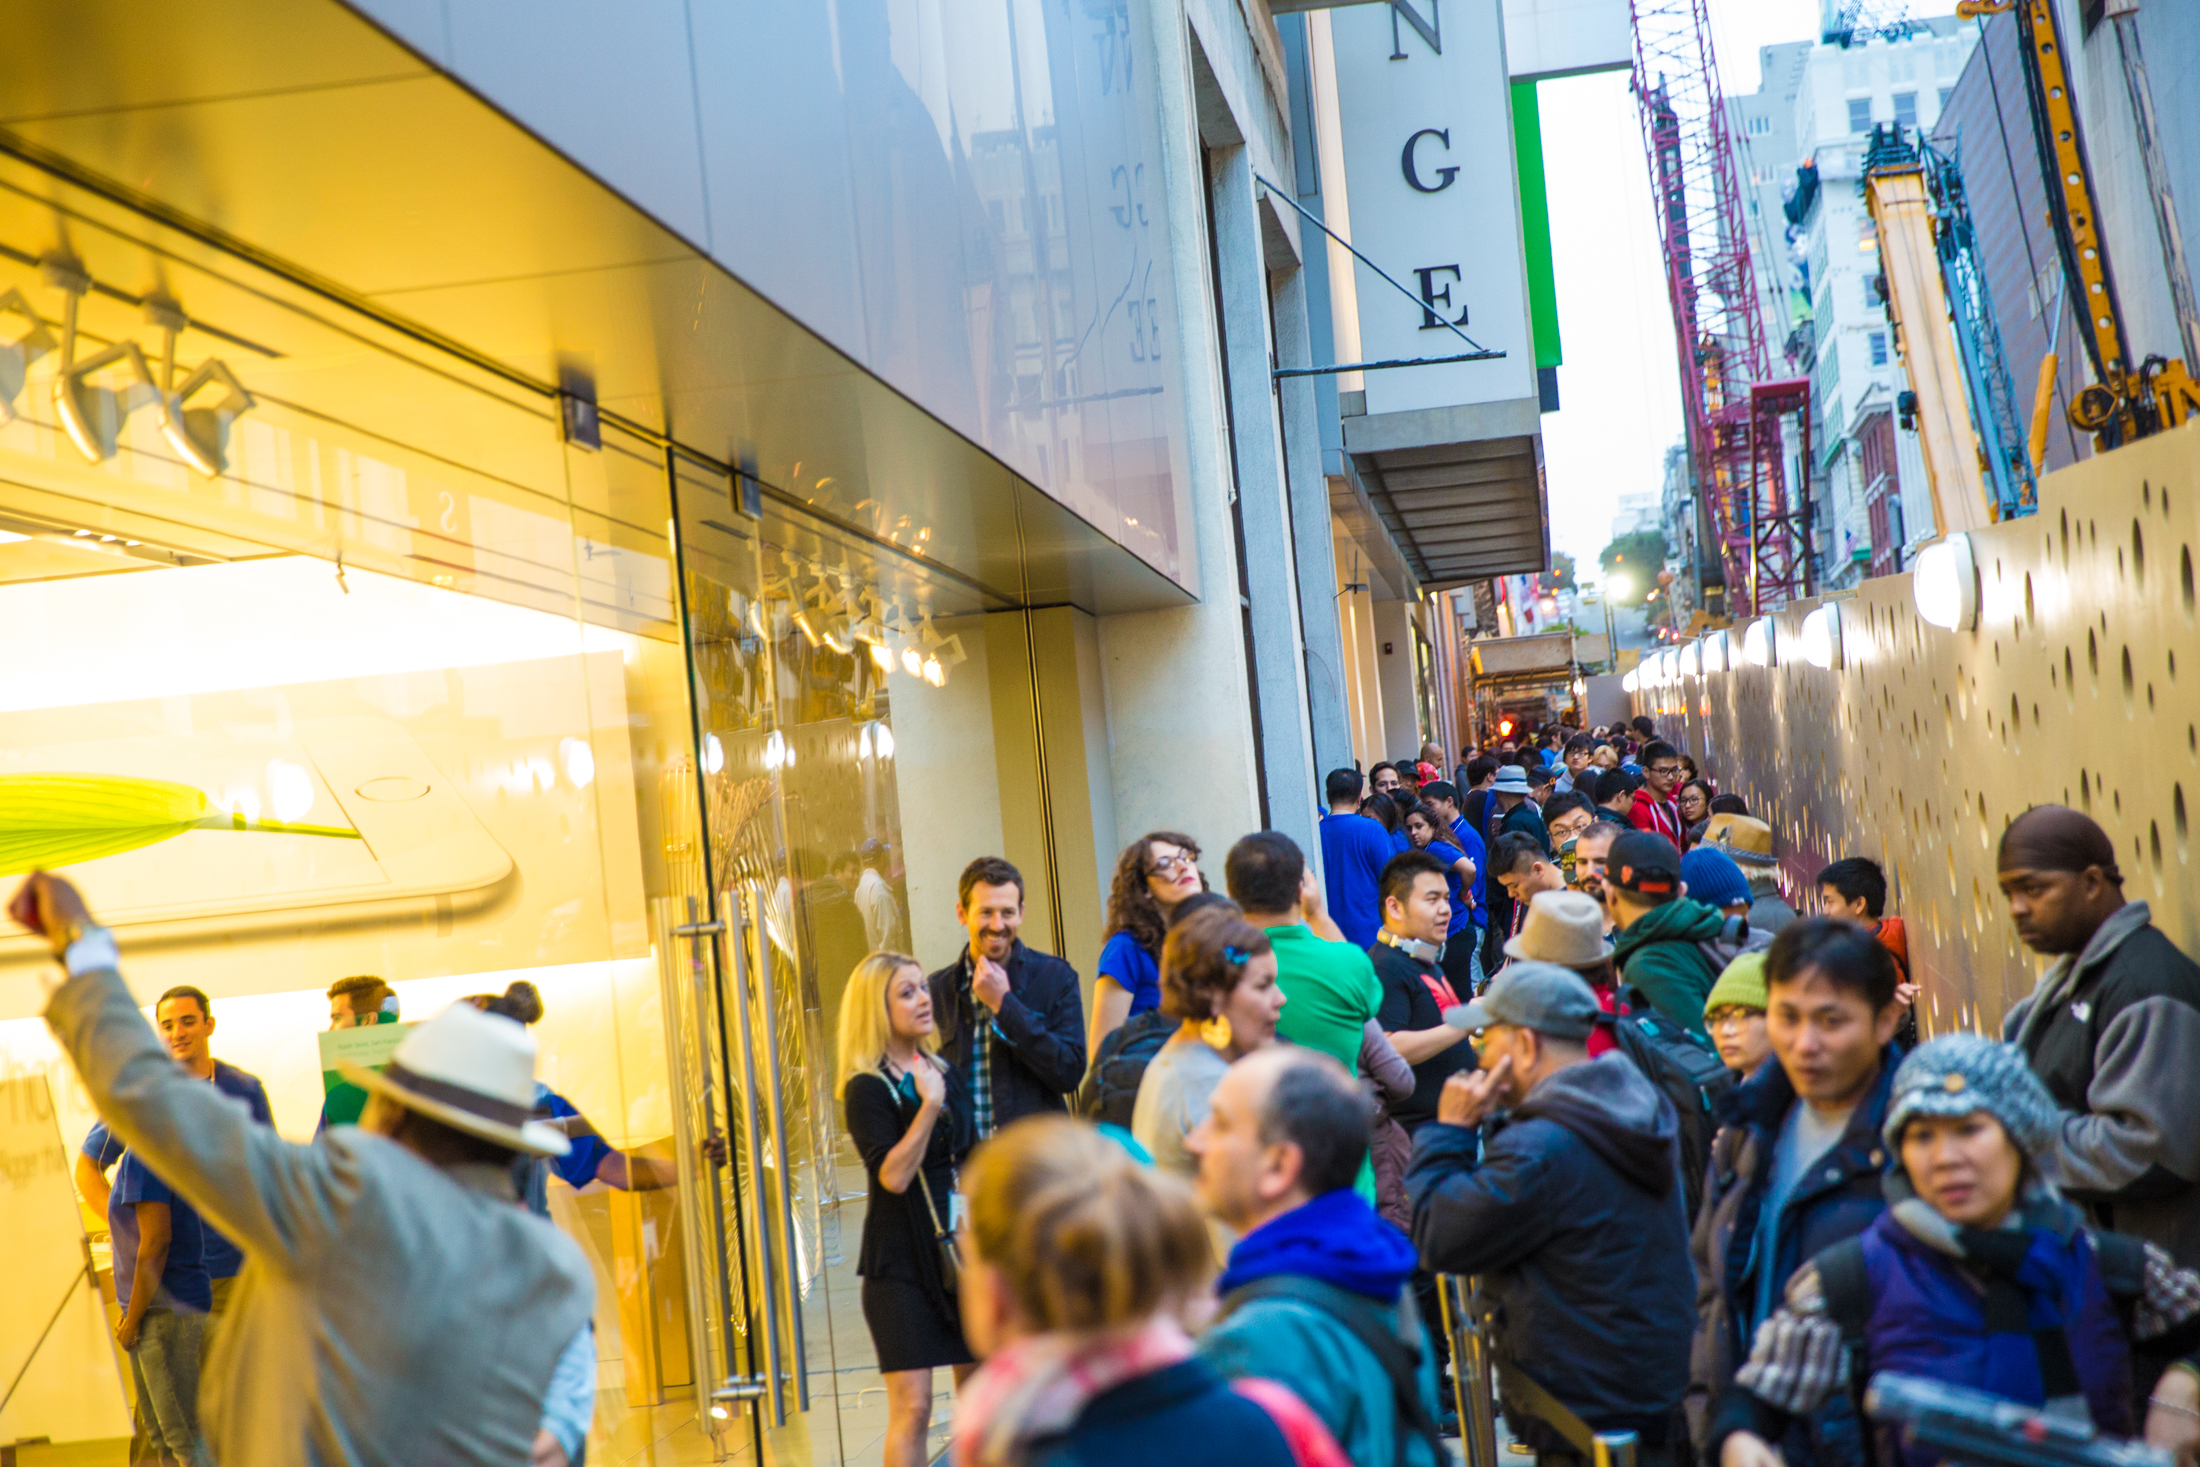 iphone6-line-apple-store-7248.jpg